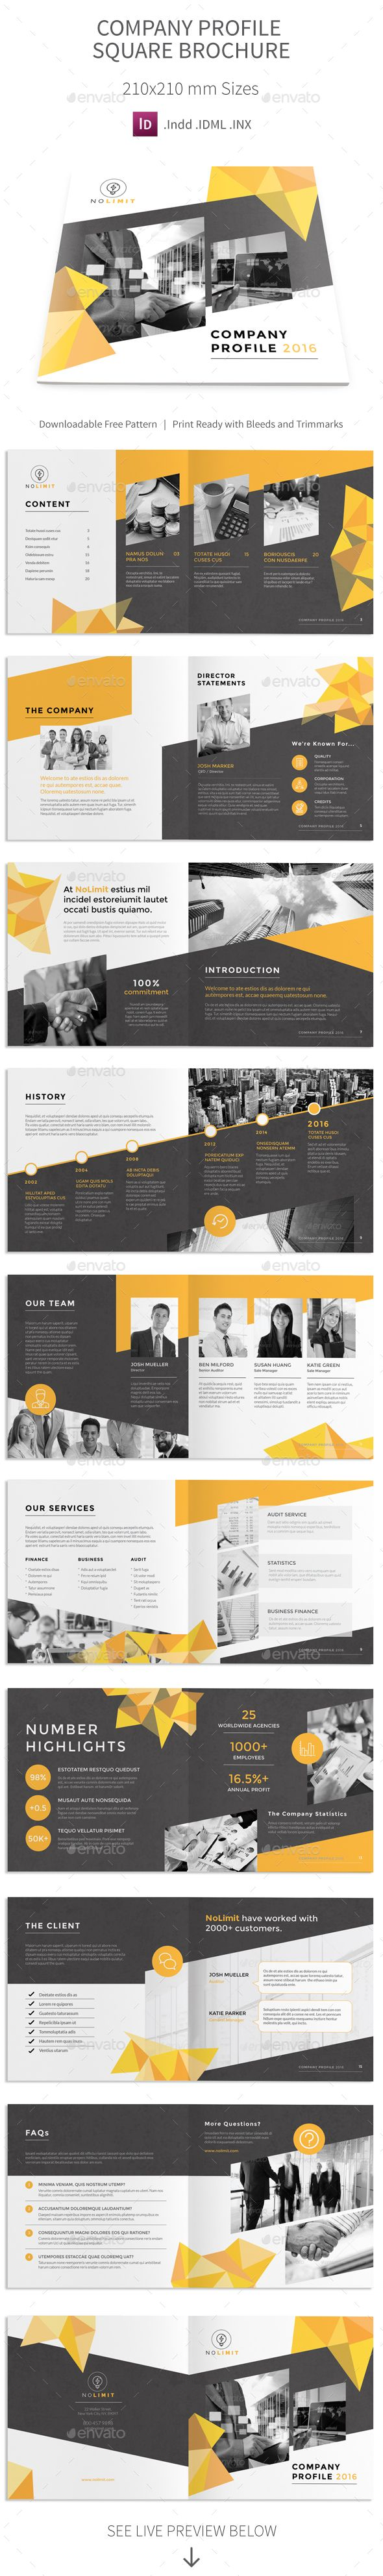 Company Profile Square Brochure 2016 Template 	InDesign INDD. Download here: http://graphicriver.net/item/company-profile-square-brochure-2016/16481145?ref=ksioks